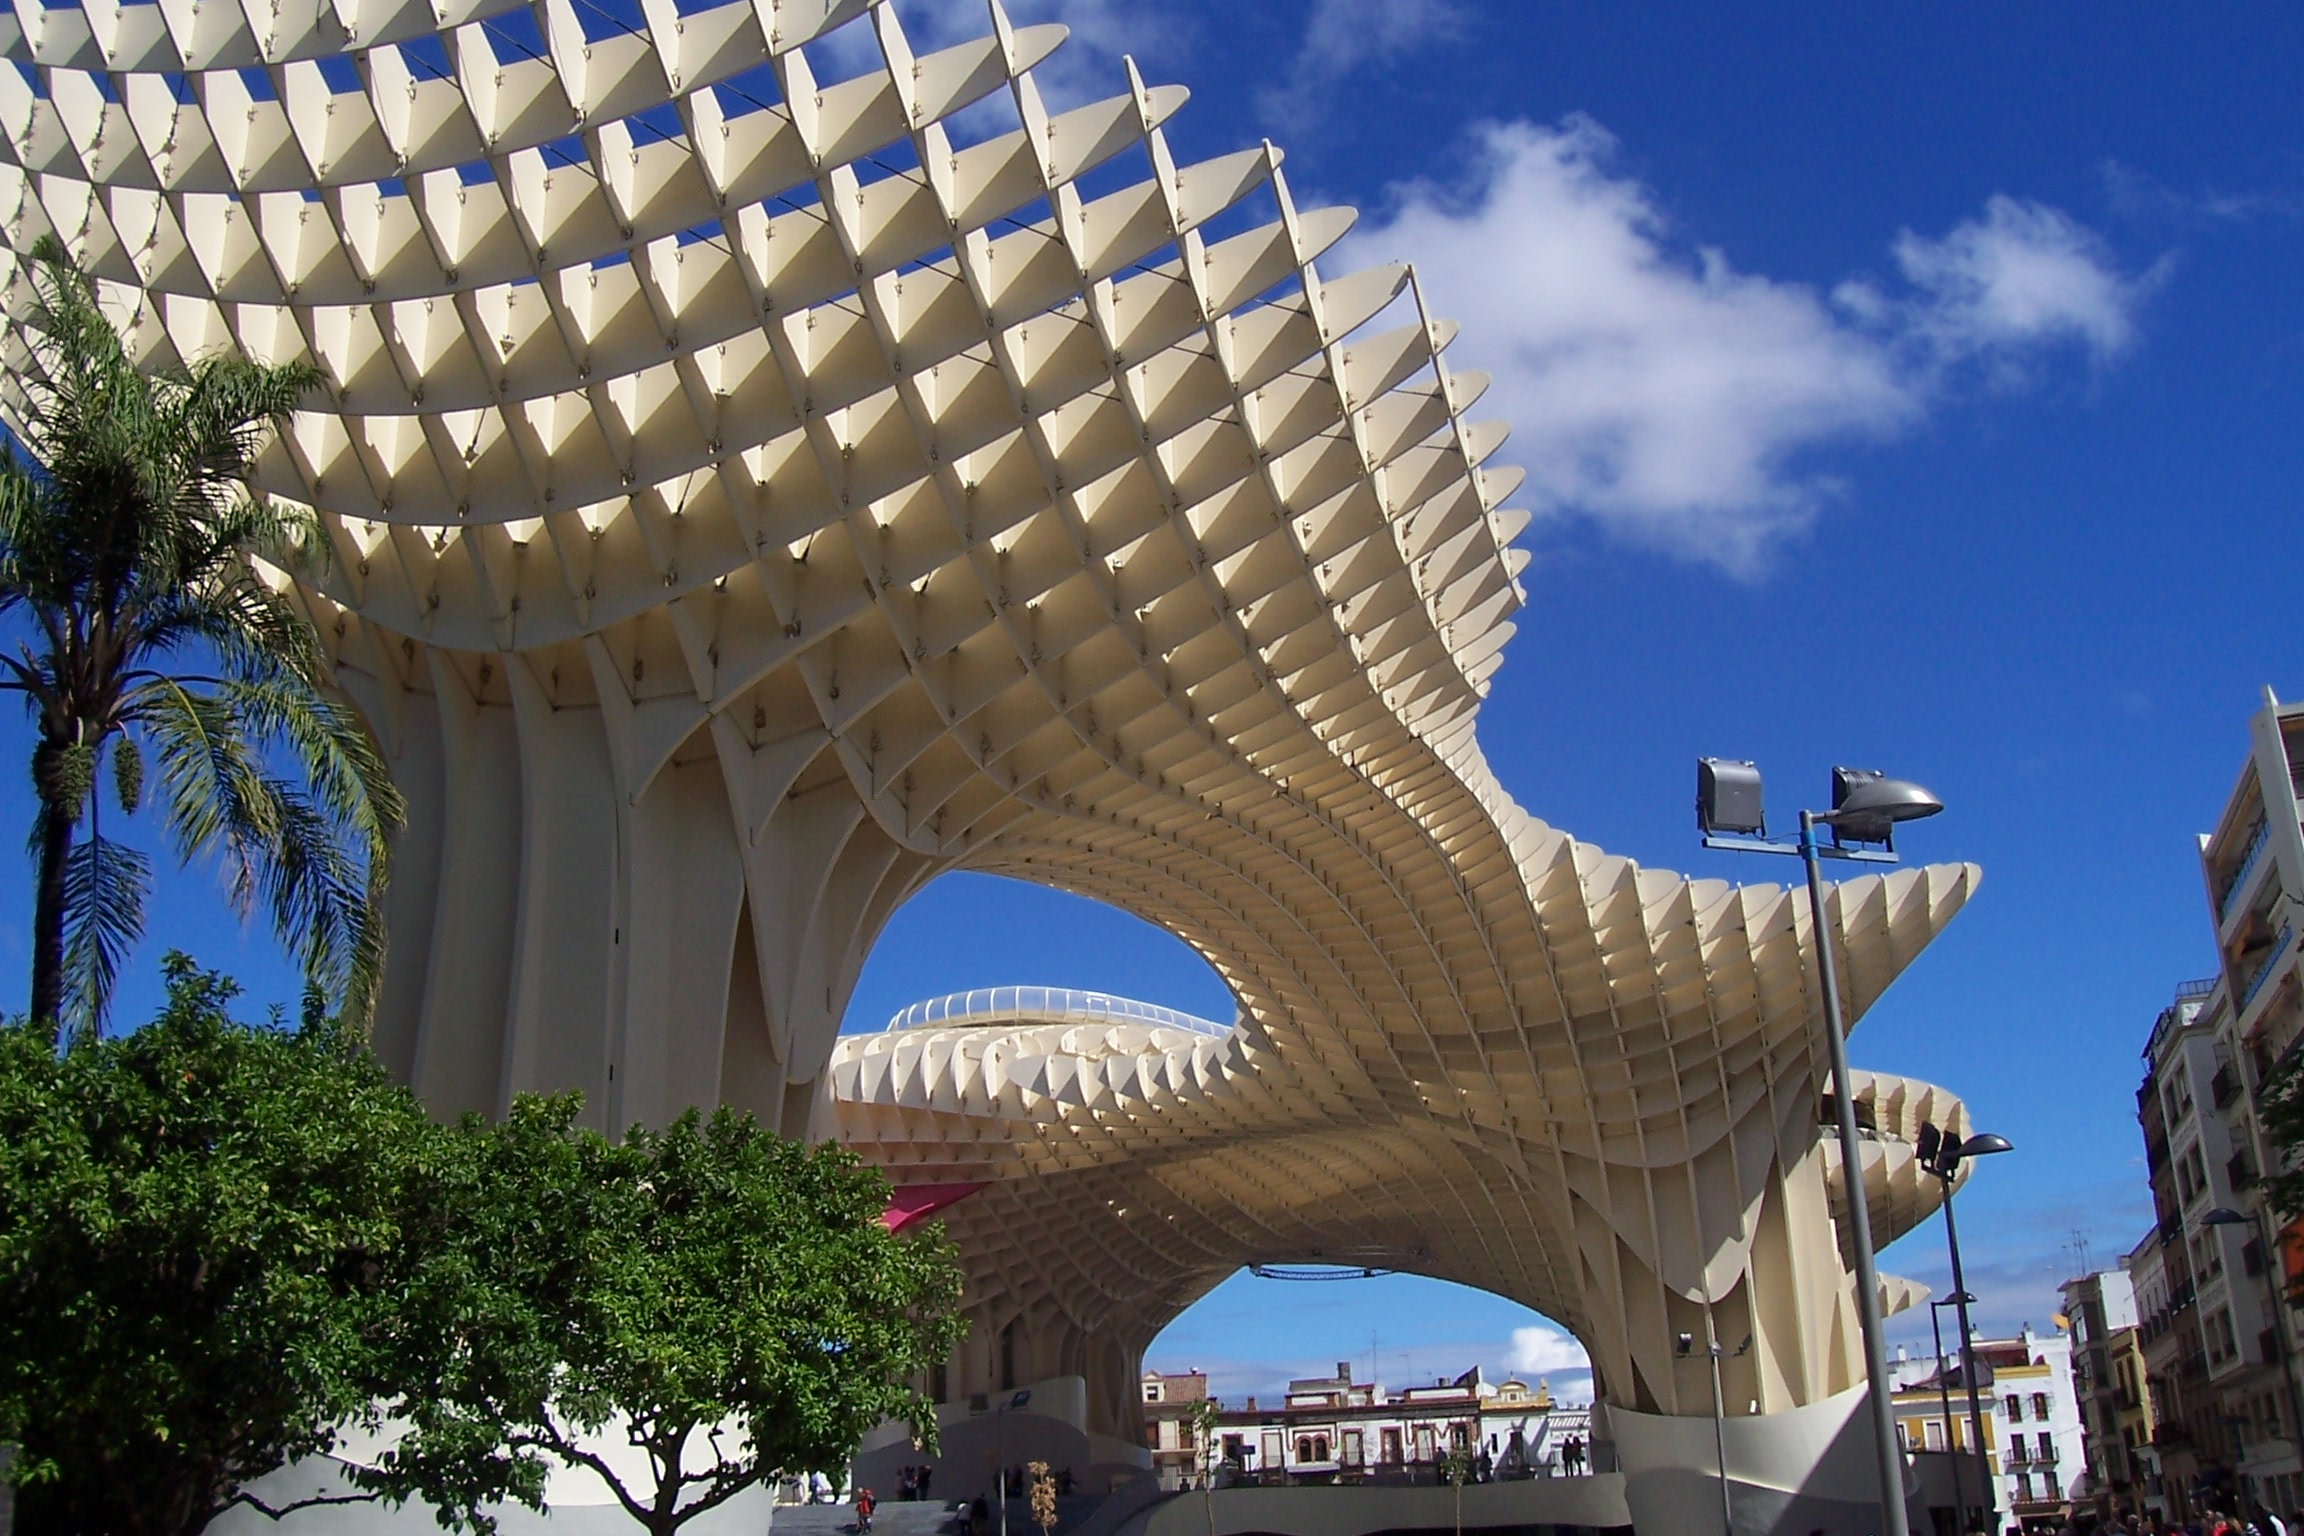 Metropol parasol the world s largest wooden structure - Metropol Parasol The World S Largest Wooden Structure 0